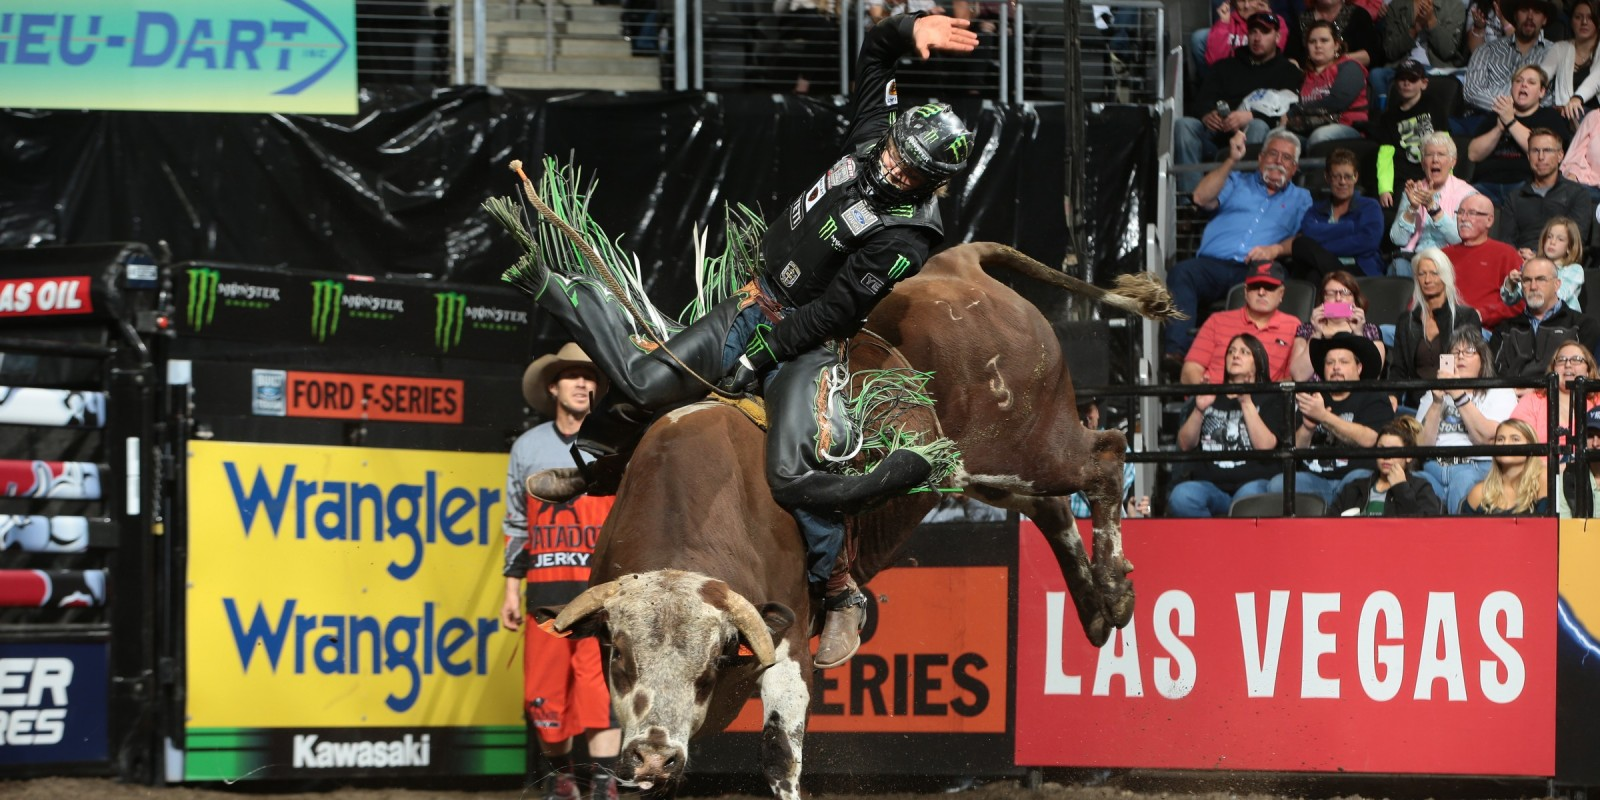 Derek Kolbaba rides Dakota Rodeo/Chad Berger/Clay Struve/Chase Bass's Red Bandana for 86.75 during the championship round of the Sioux Falls Built Ford Tough series PBR